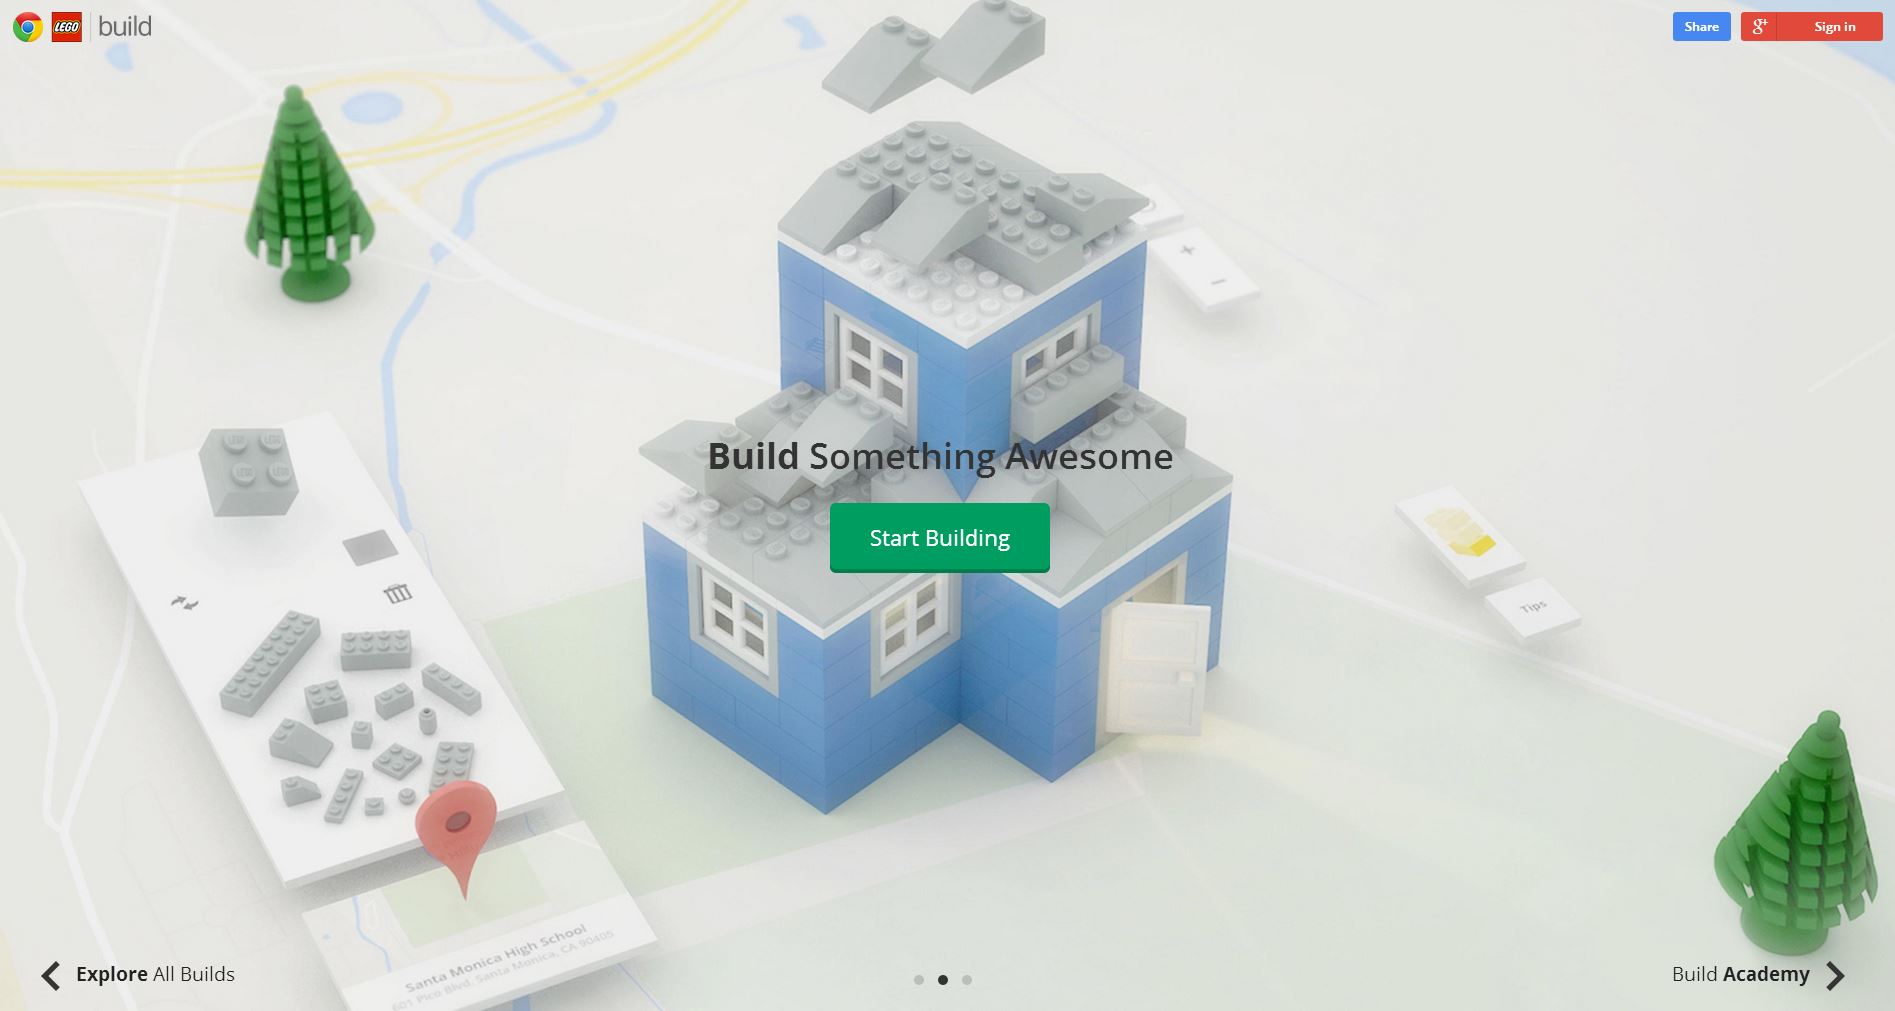 buildwithchrome